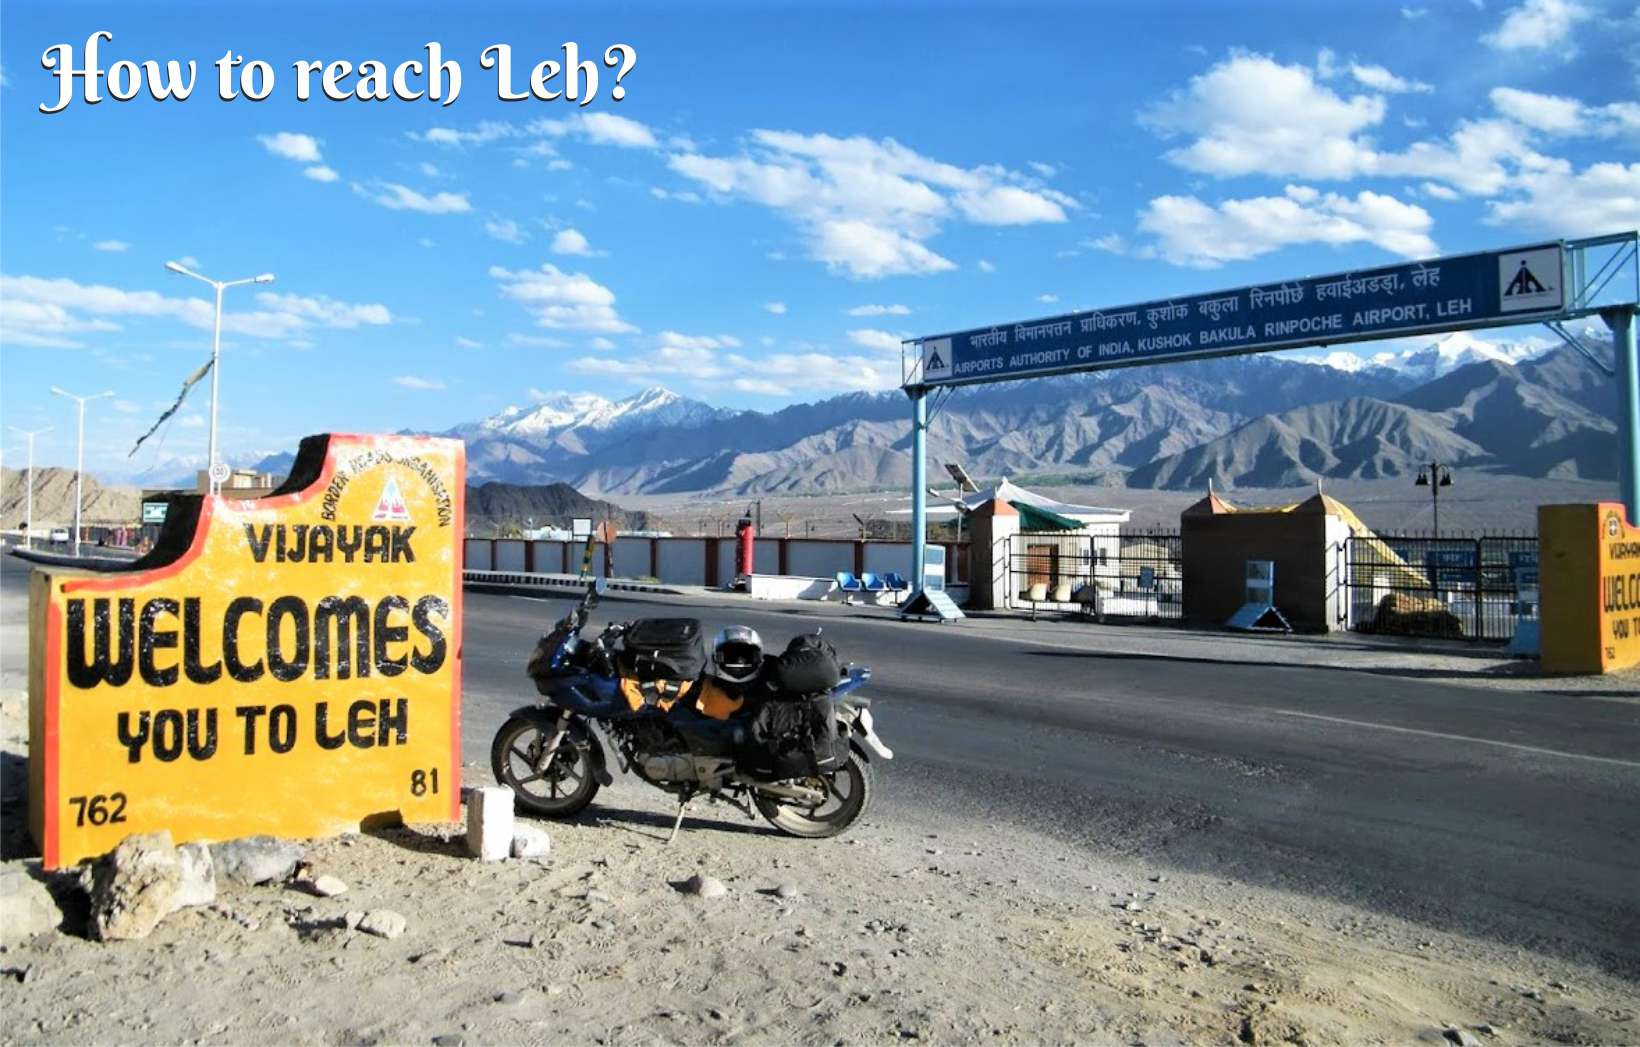 Welcome to Leh board with Airport in background